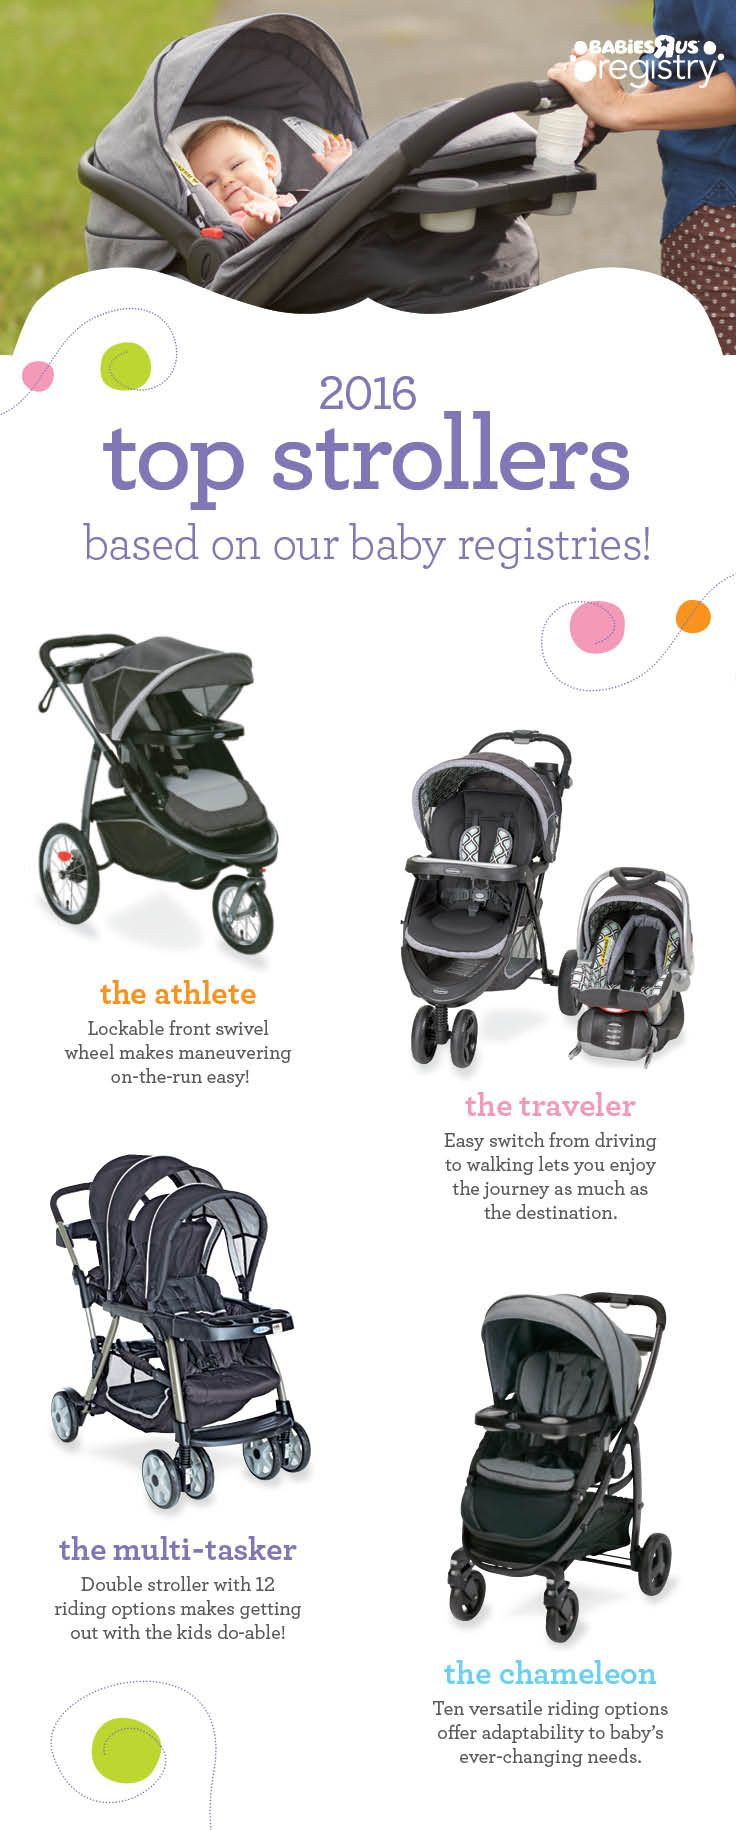 Graco Duo Jogging Stroller 199 Best On The Go Images On Pinterest